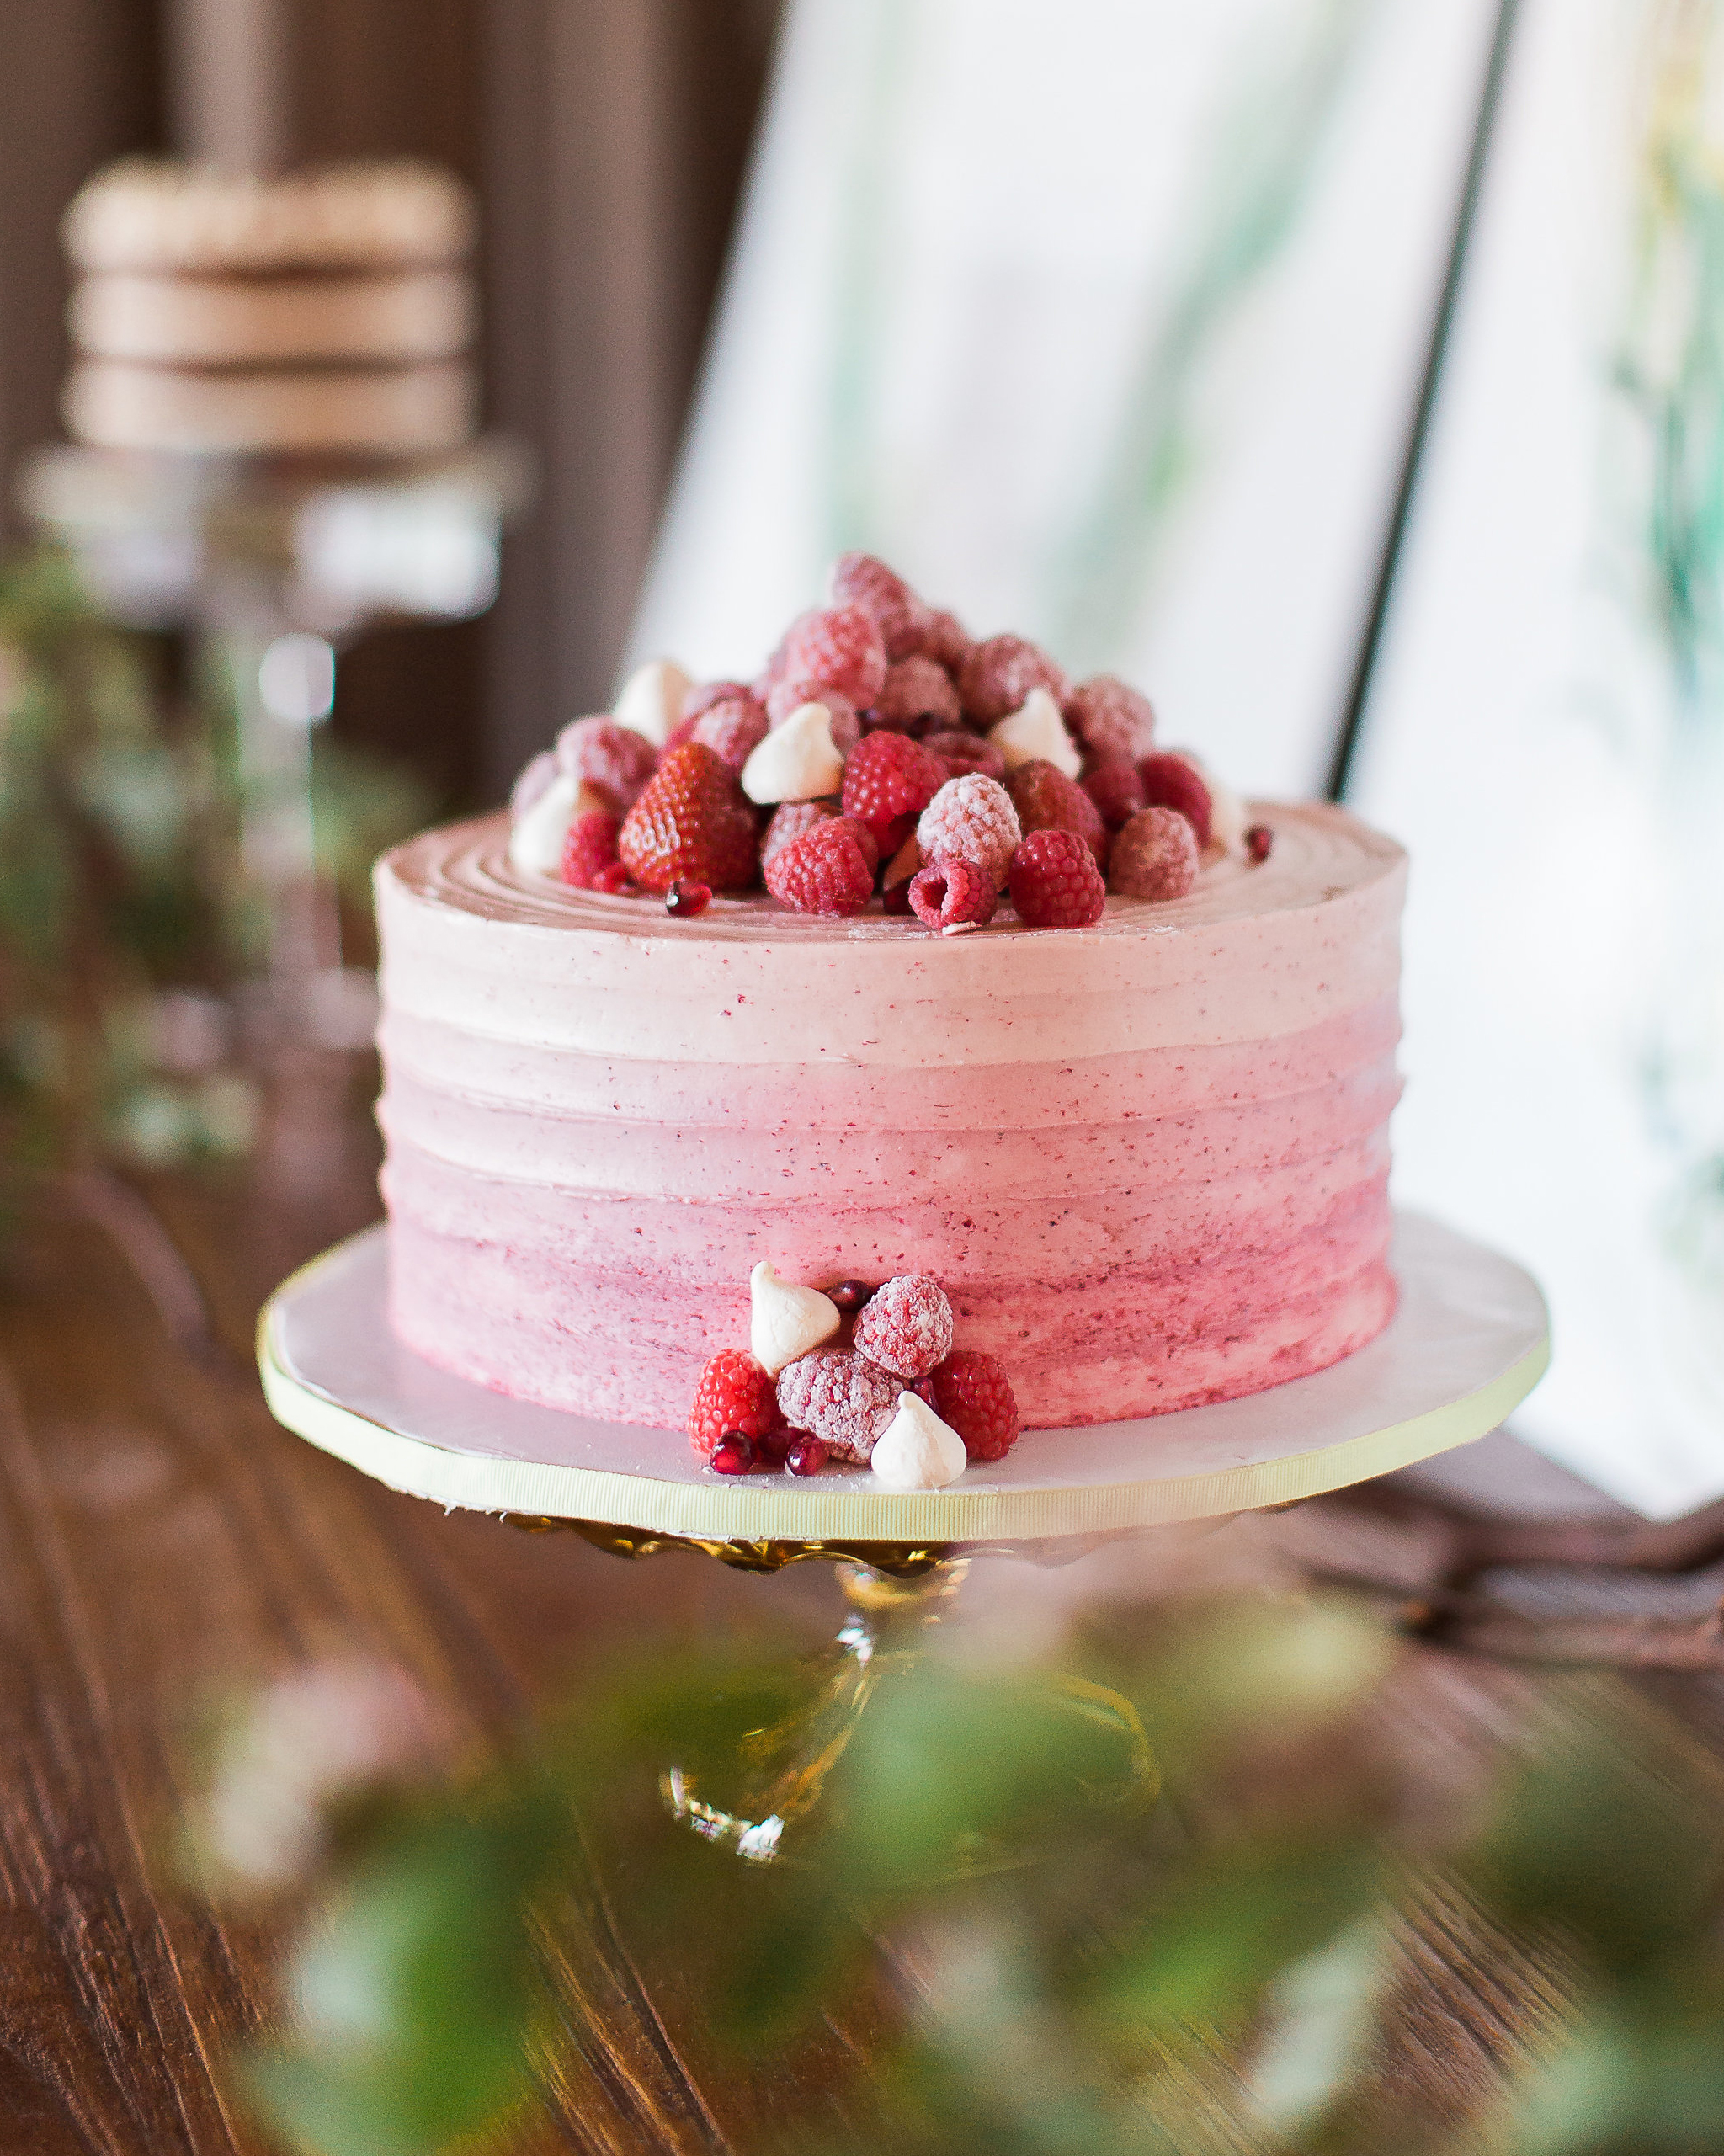 creative-cake-flavors-chocolate-cake-with-fresh-raspberry-0116-buttercream.jpg